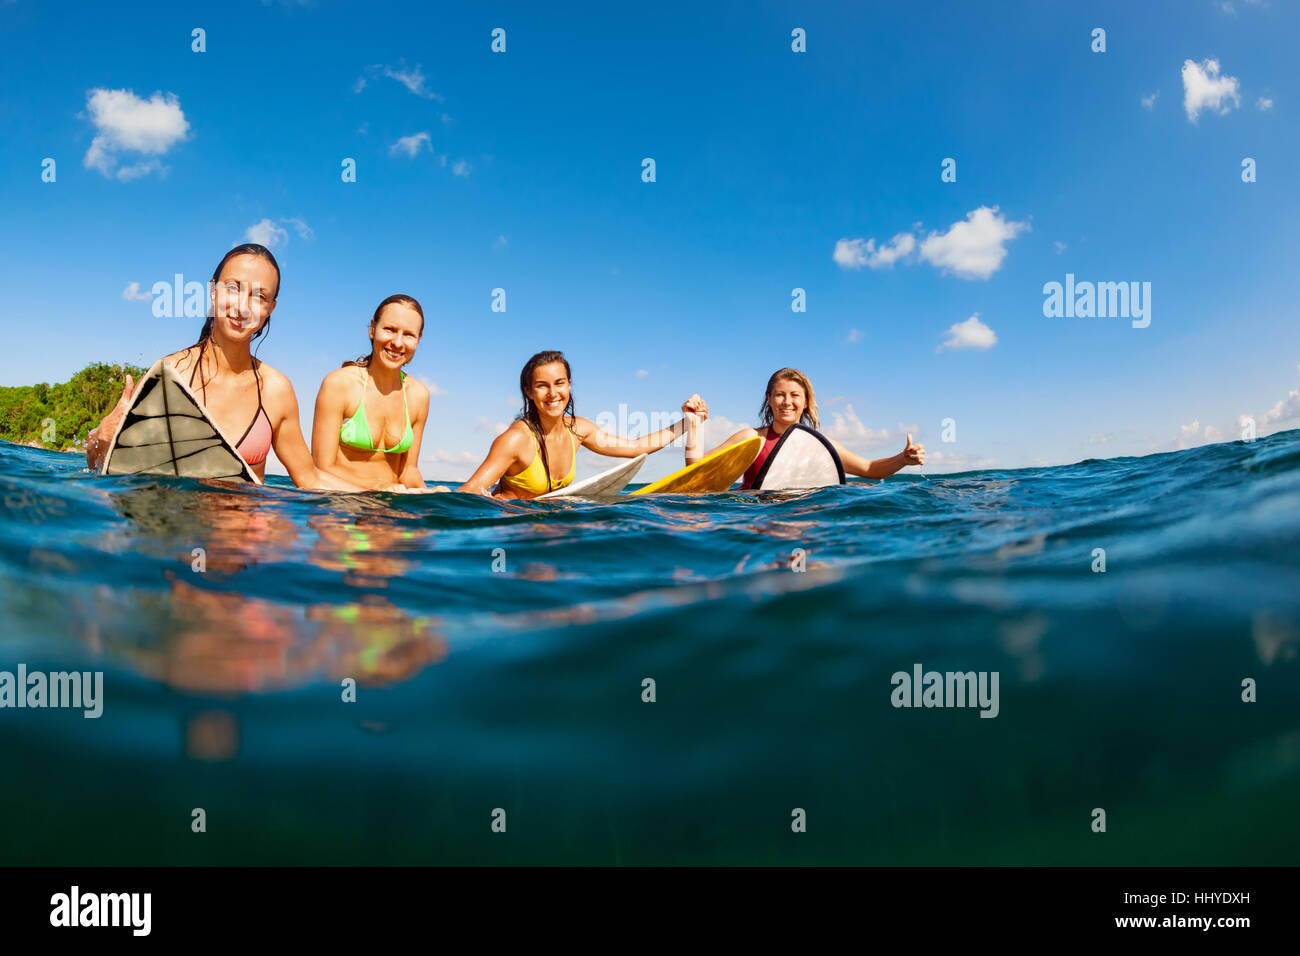 Girls in bikini - group of surfers on surf boards, women wait for ocean wave People in water sport adventure camp, - Stock Image